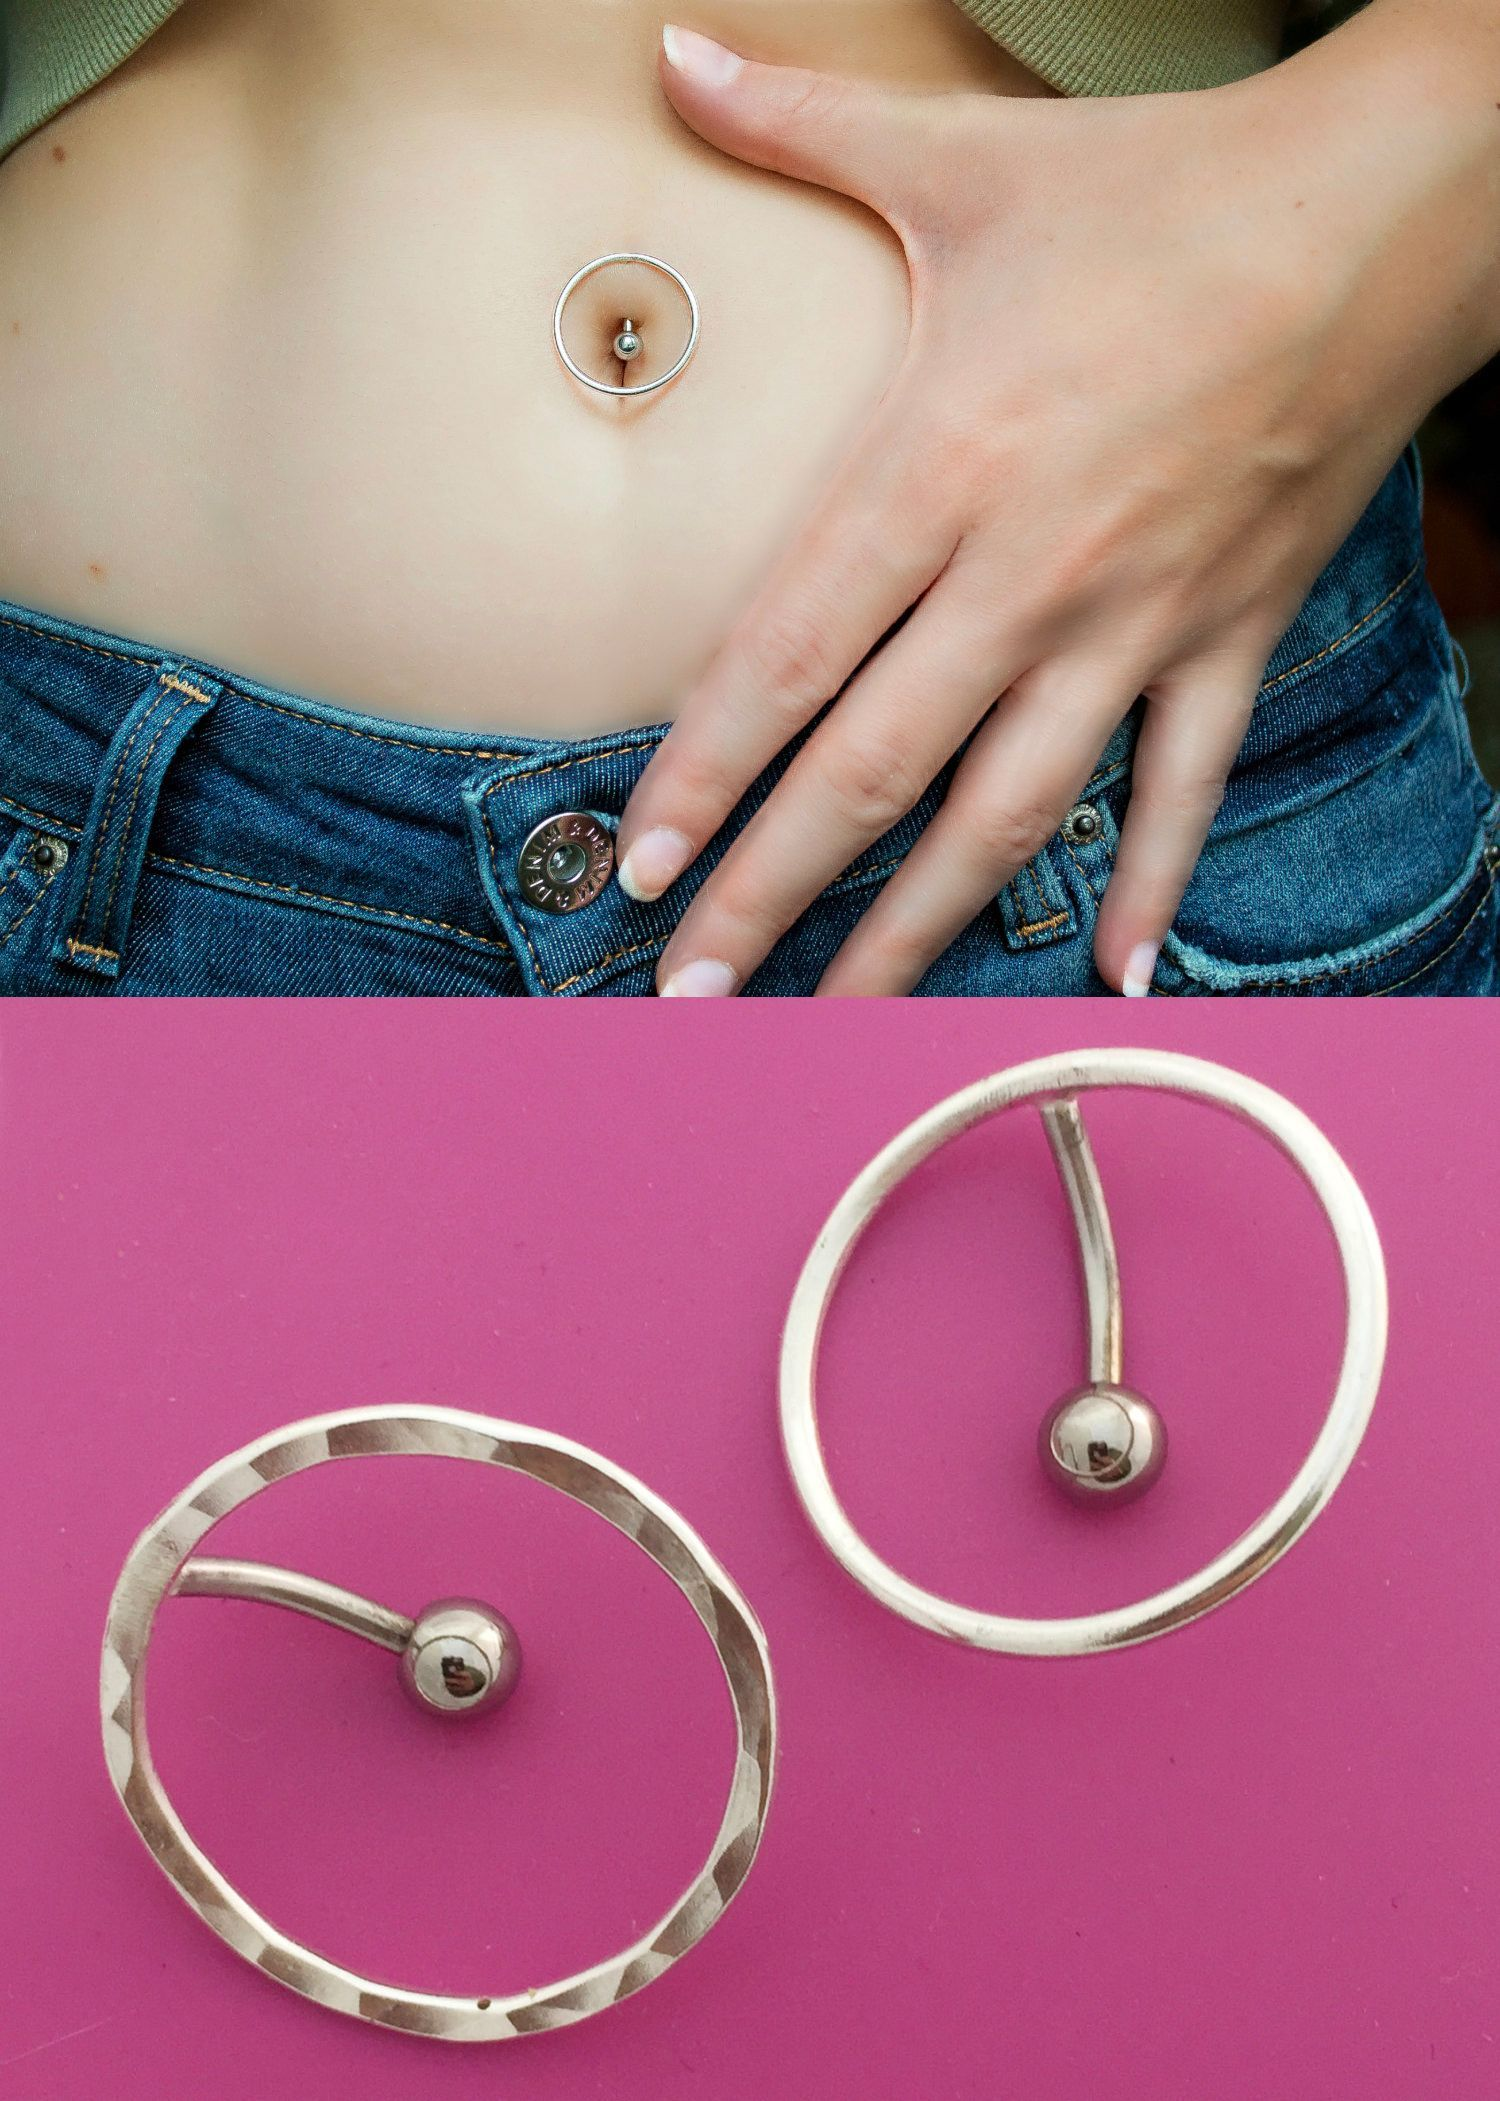 Double piercing belly  Top Down Circle Belly Button Ring  Tres Alternative  Pinterest